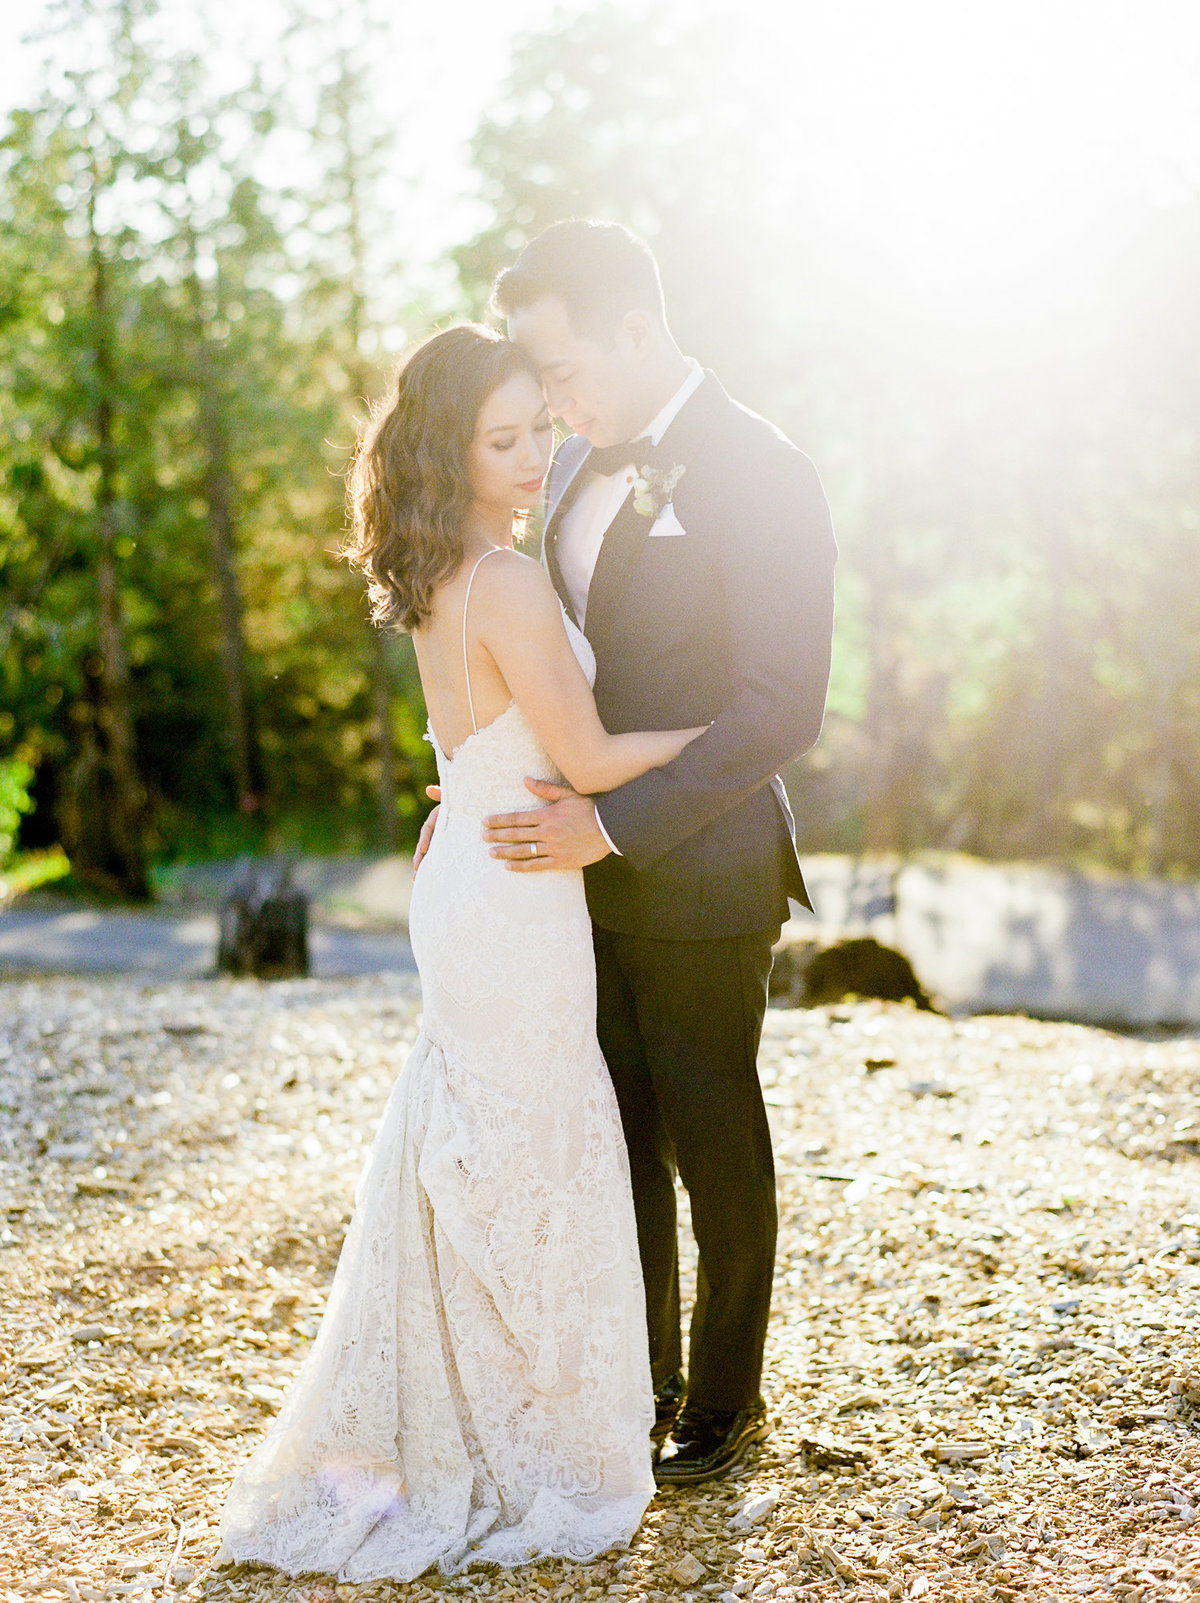 Wedding_CC_JasmineLeePhotography_049